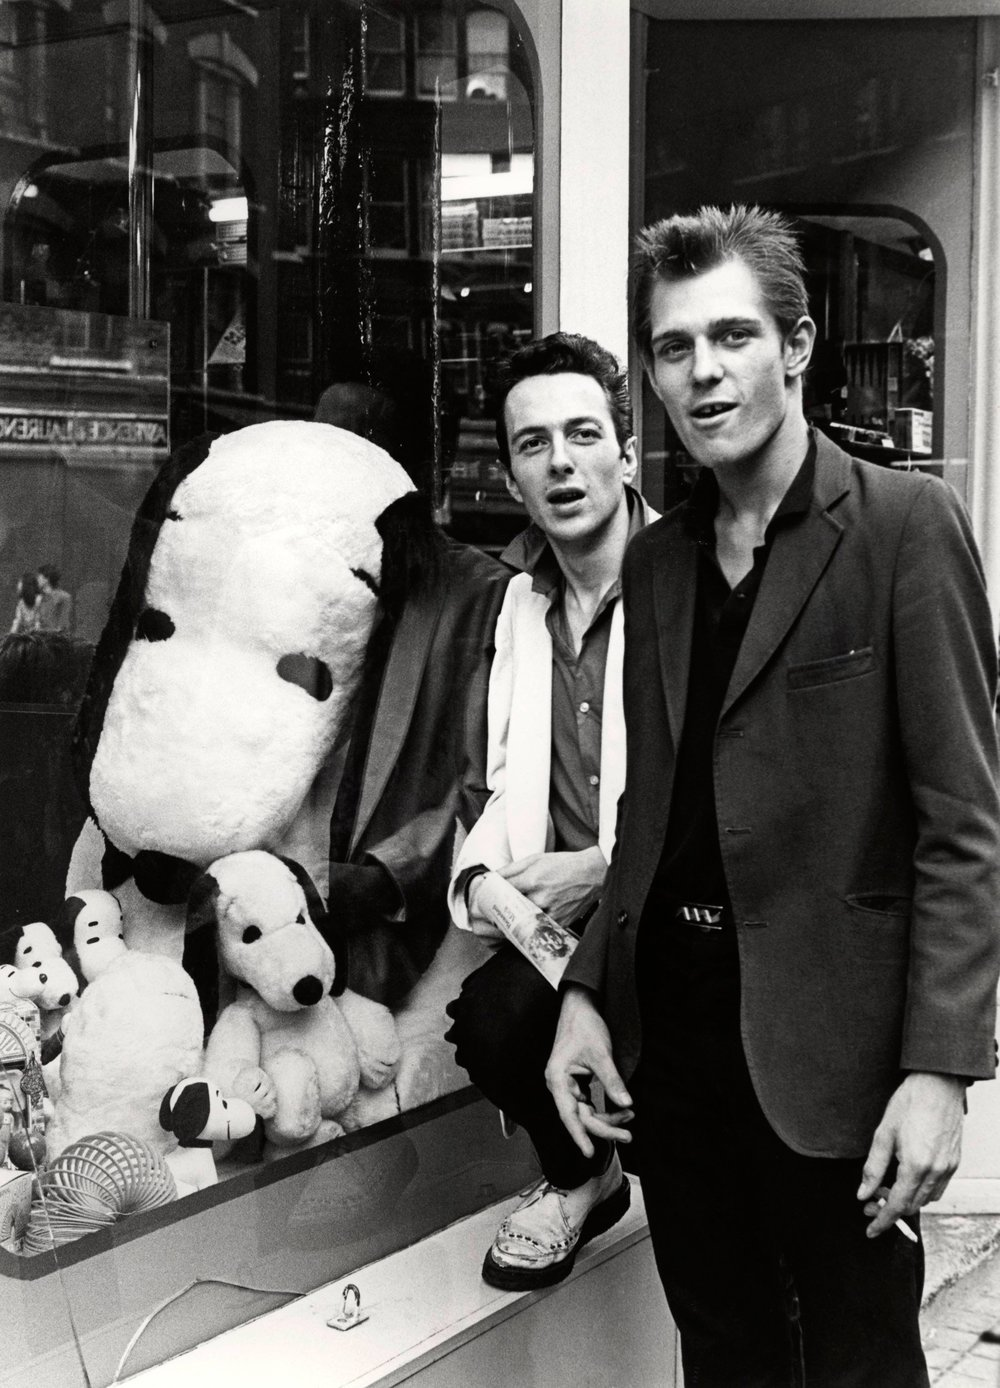 Joe Strummer and Paul Simonon outside a shop in Leicester Square Photo: Virginia Turbett / Getty Images